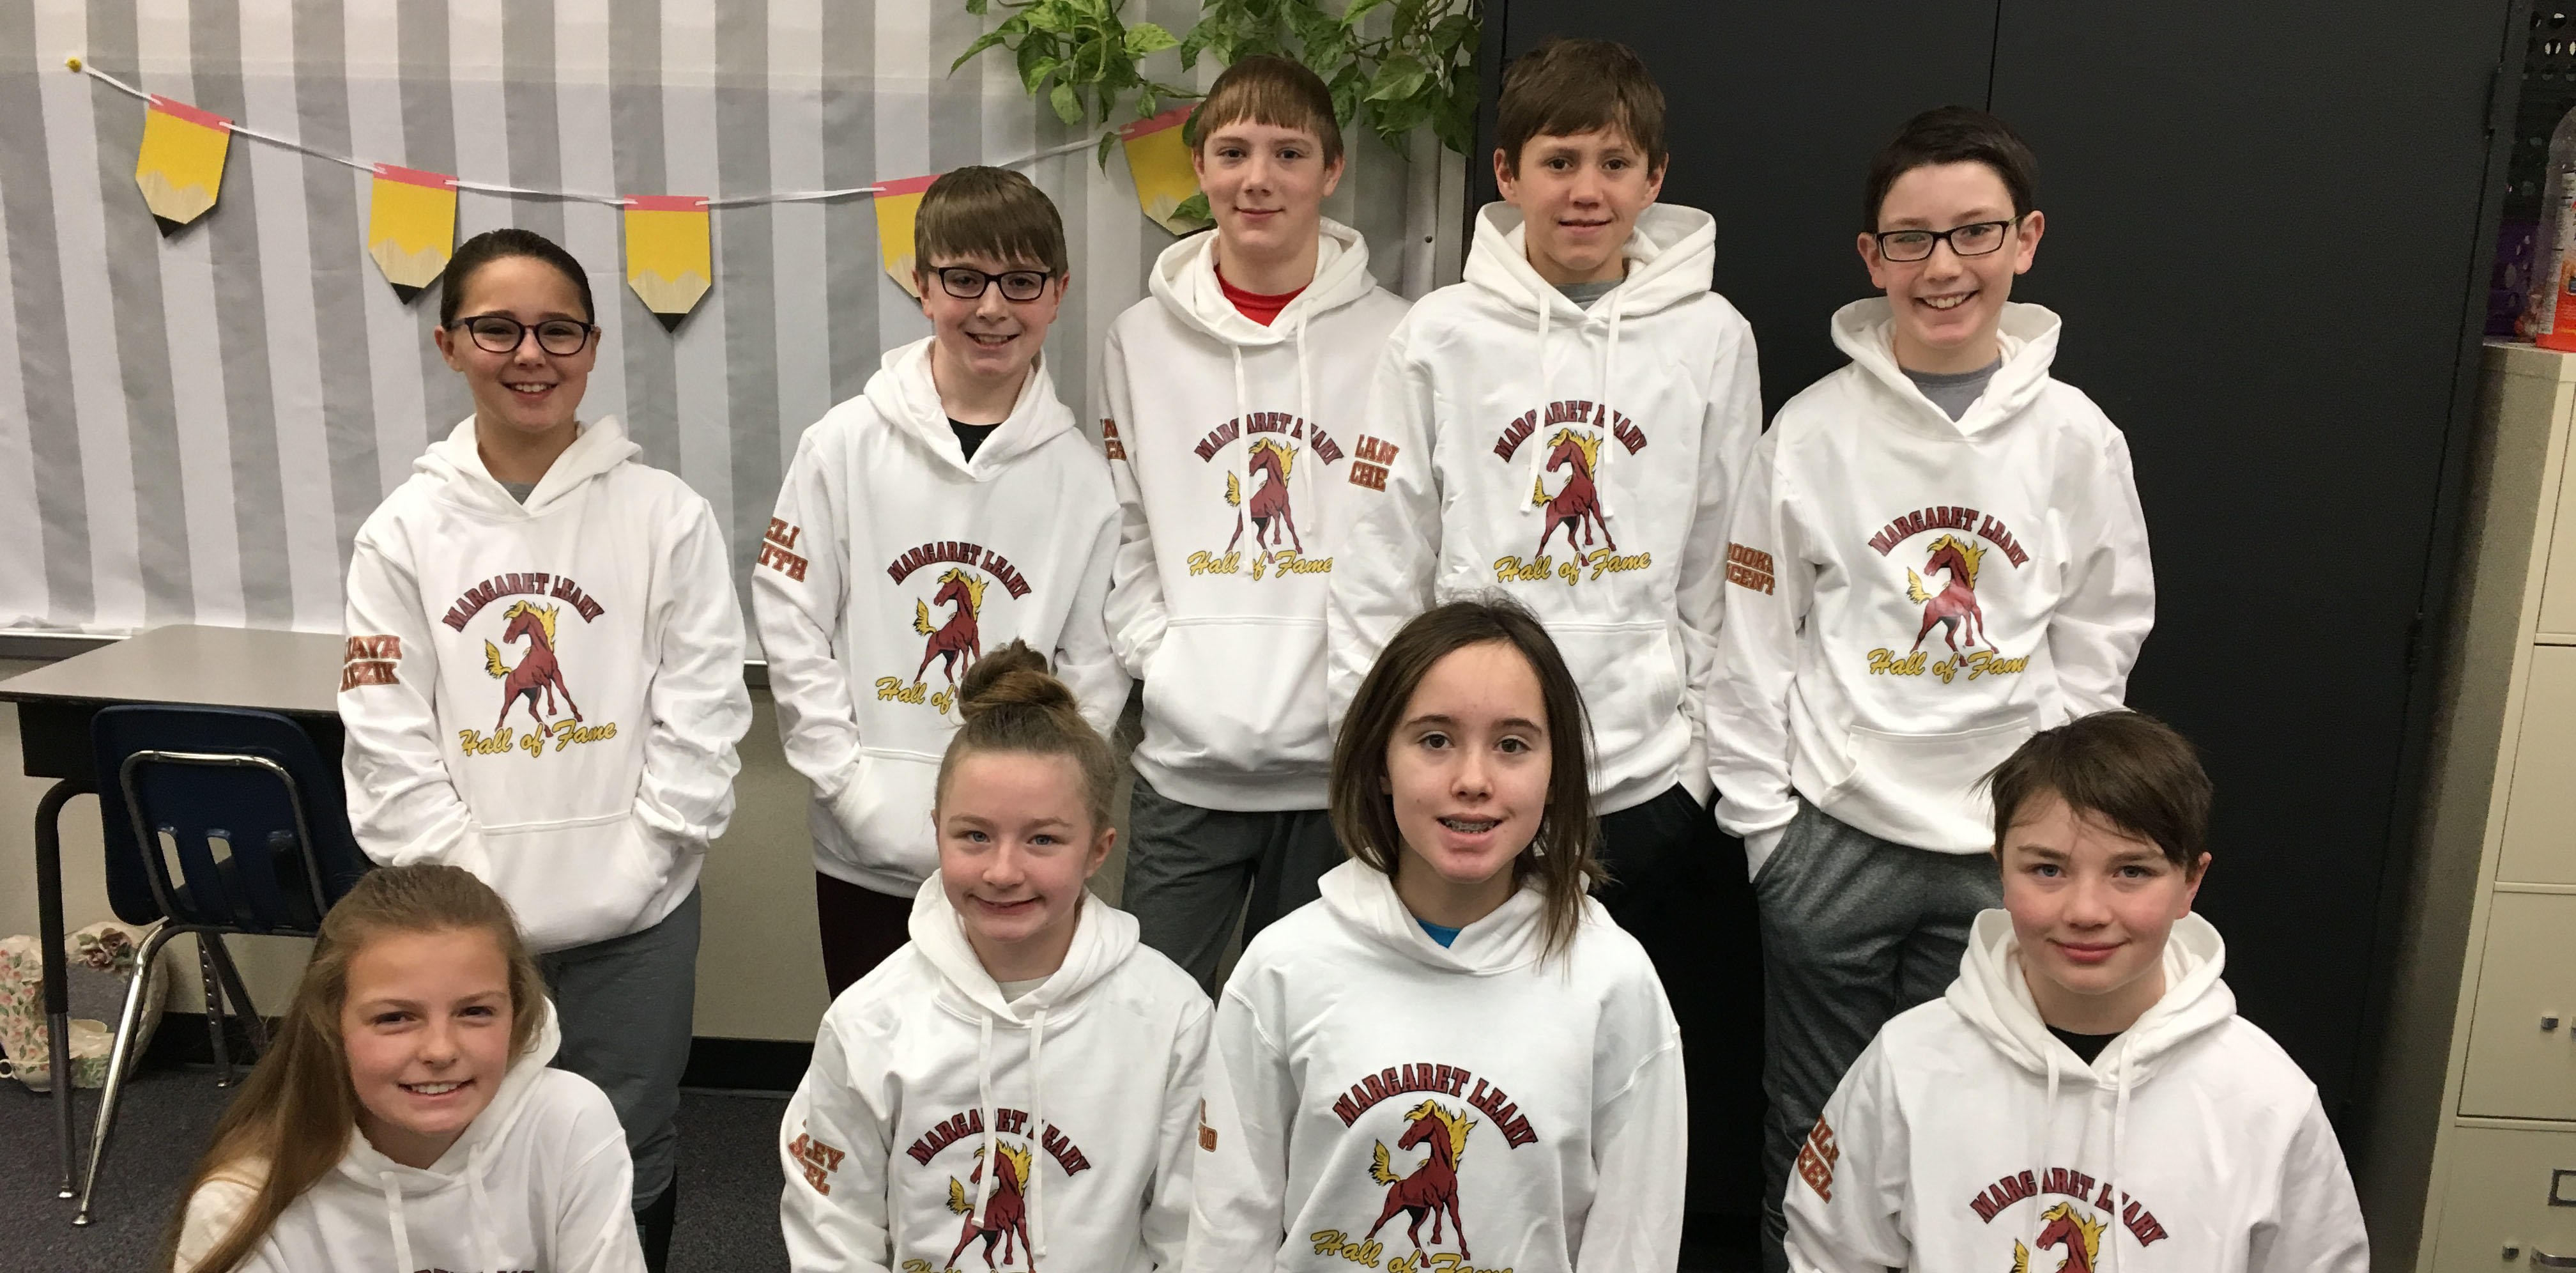 Hall of Fame Students and their new sweatshirts